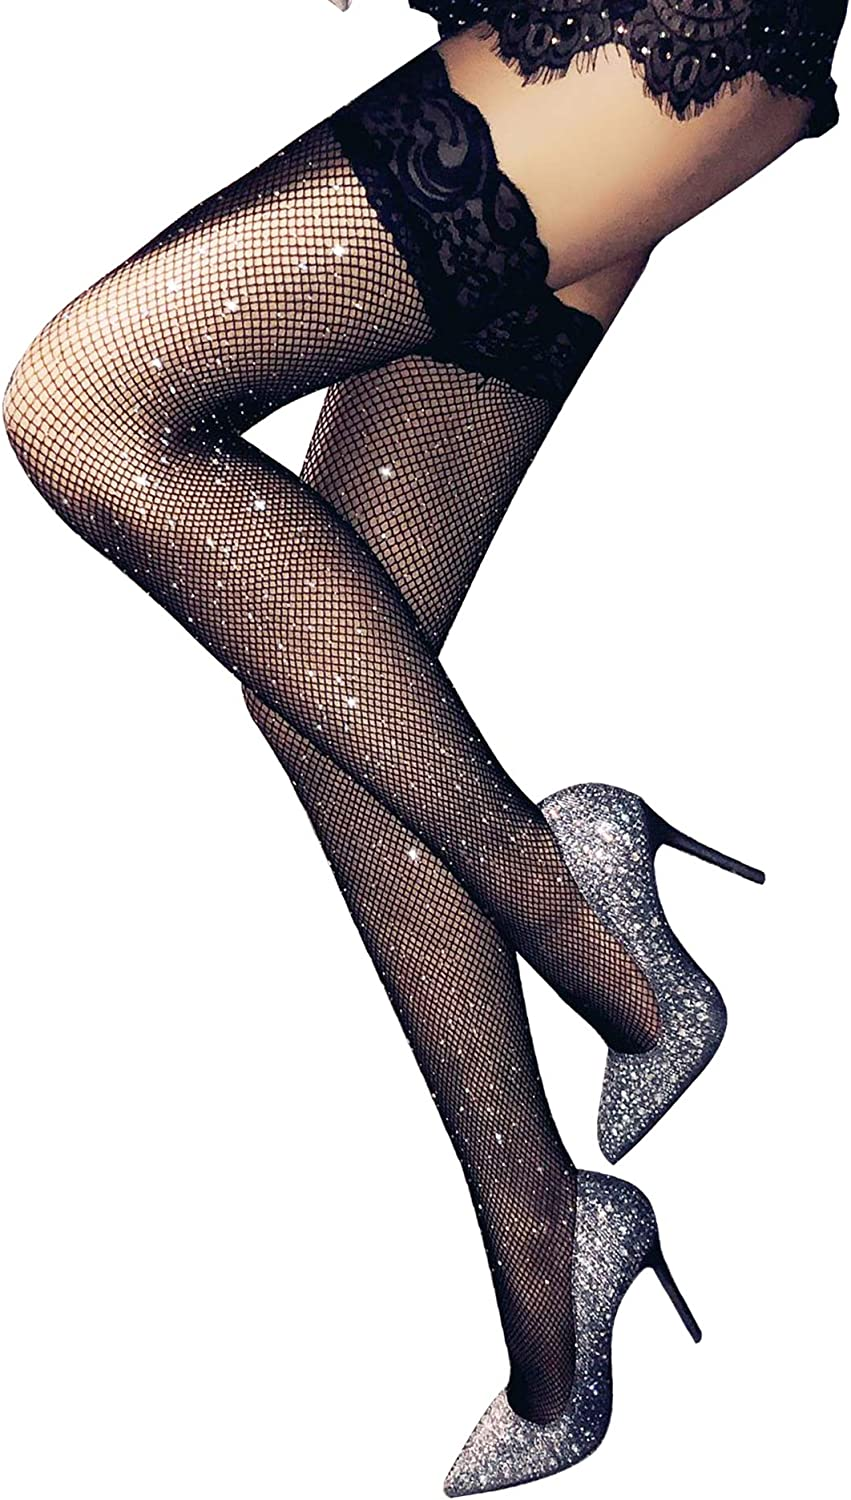 Lookswe Stockings Women's Thigh High Tights Lace Top Stay Up Socks Sexy Hosiery